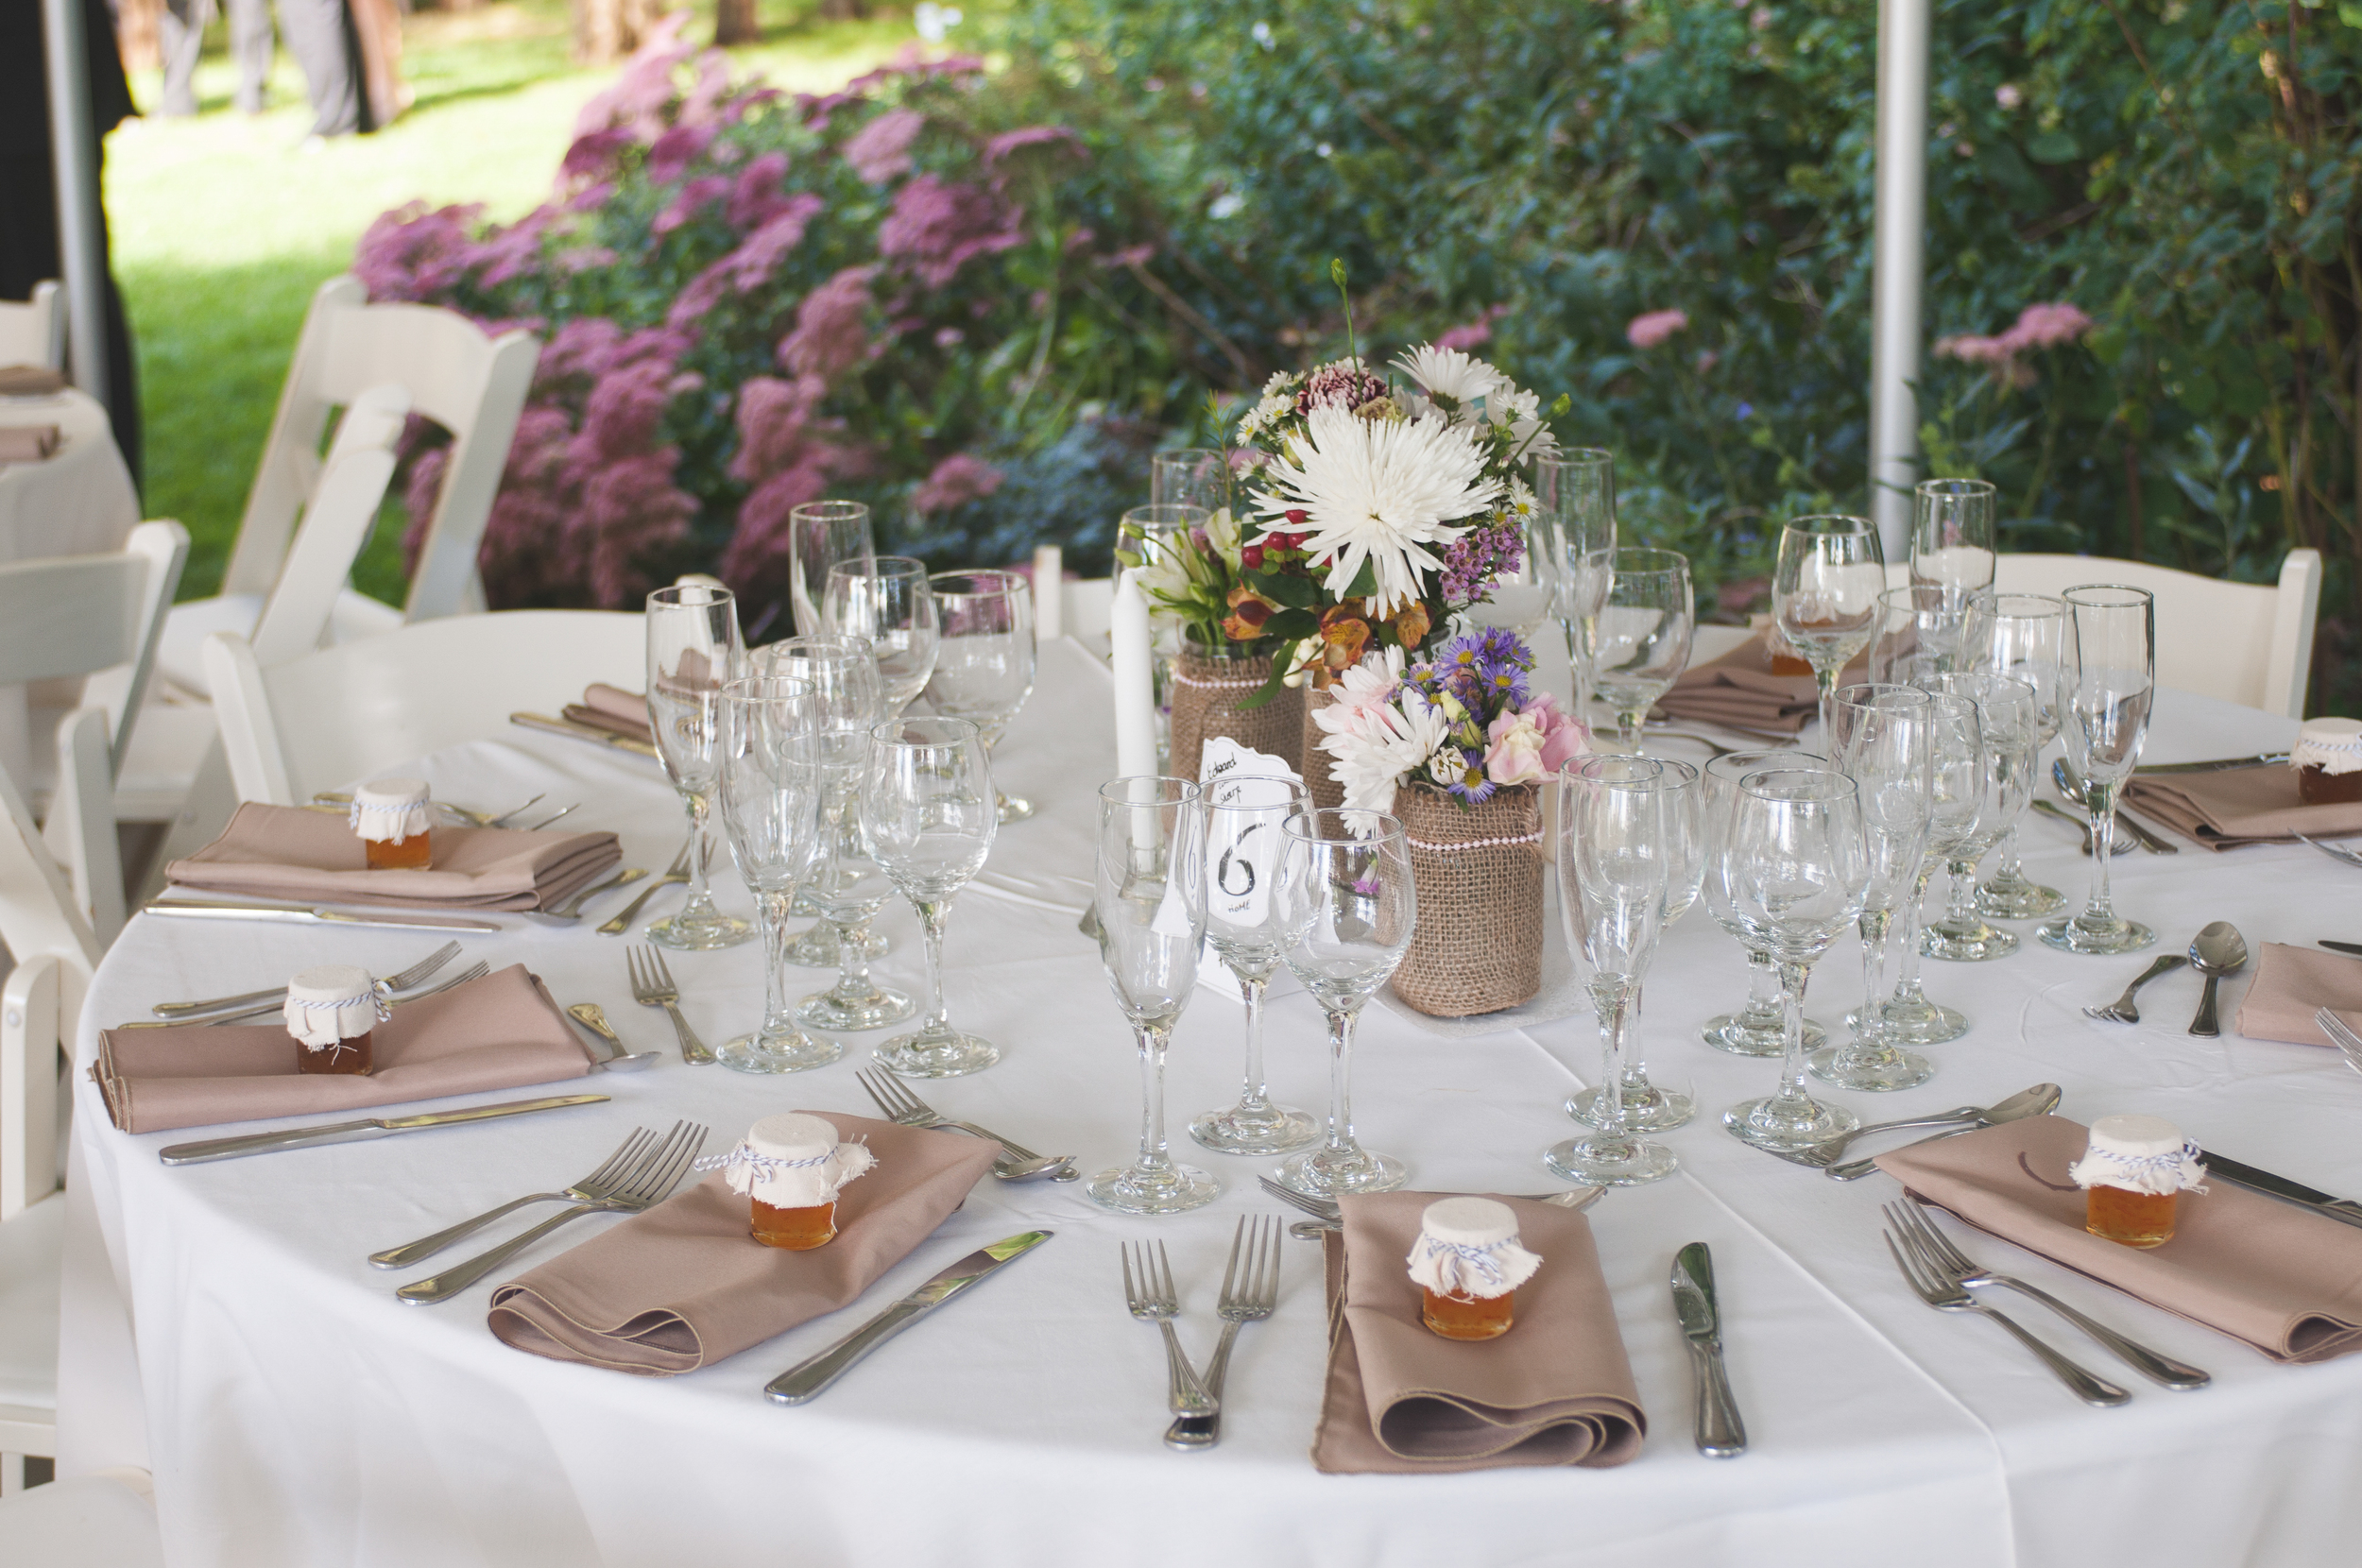 wedding-natural-light-photography-table-styling-flowers-digital-long-island-wedding-photographer-2.jpg